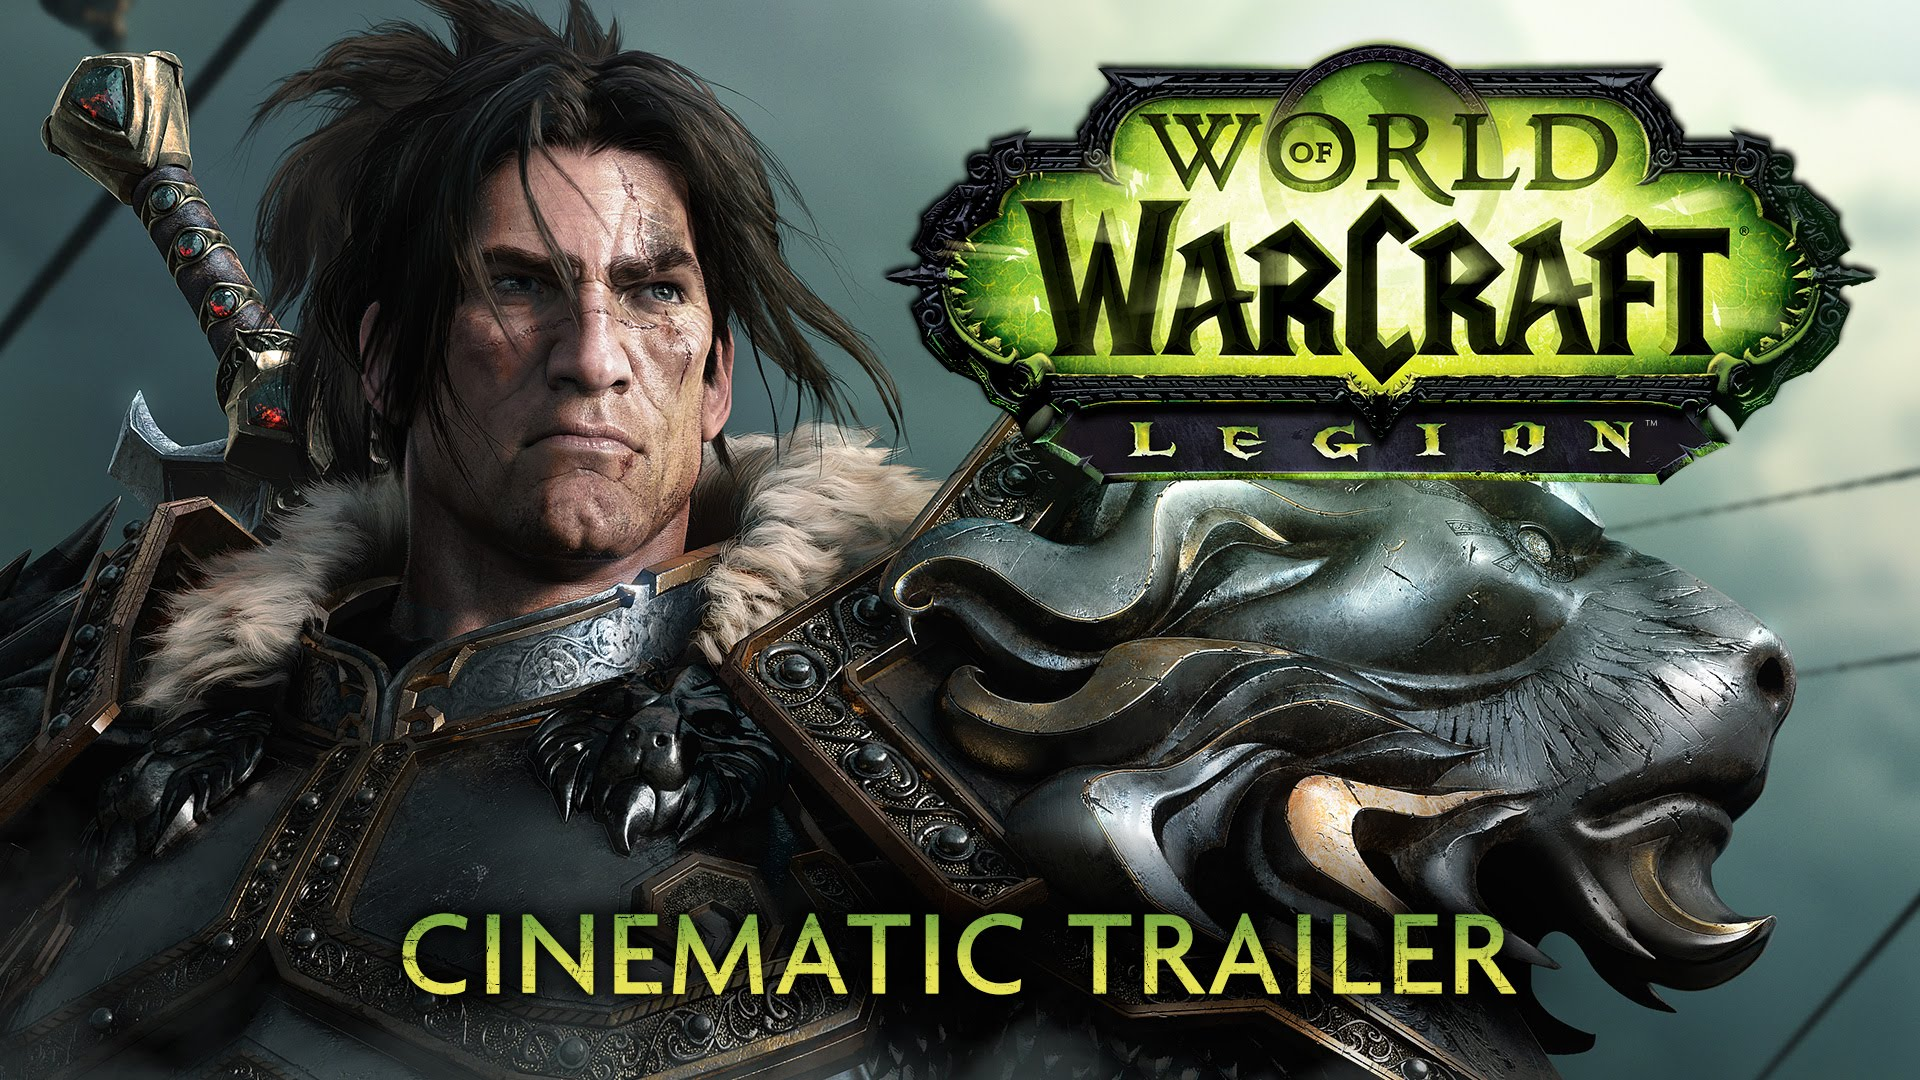 Tralier: WORLD OF WARCRAFT LEGION